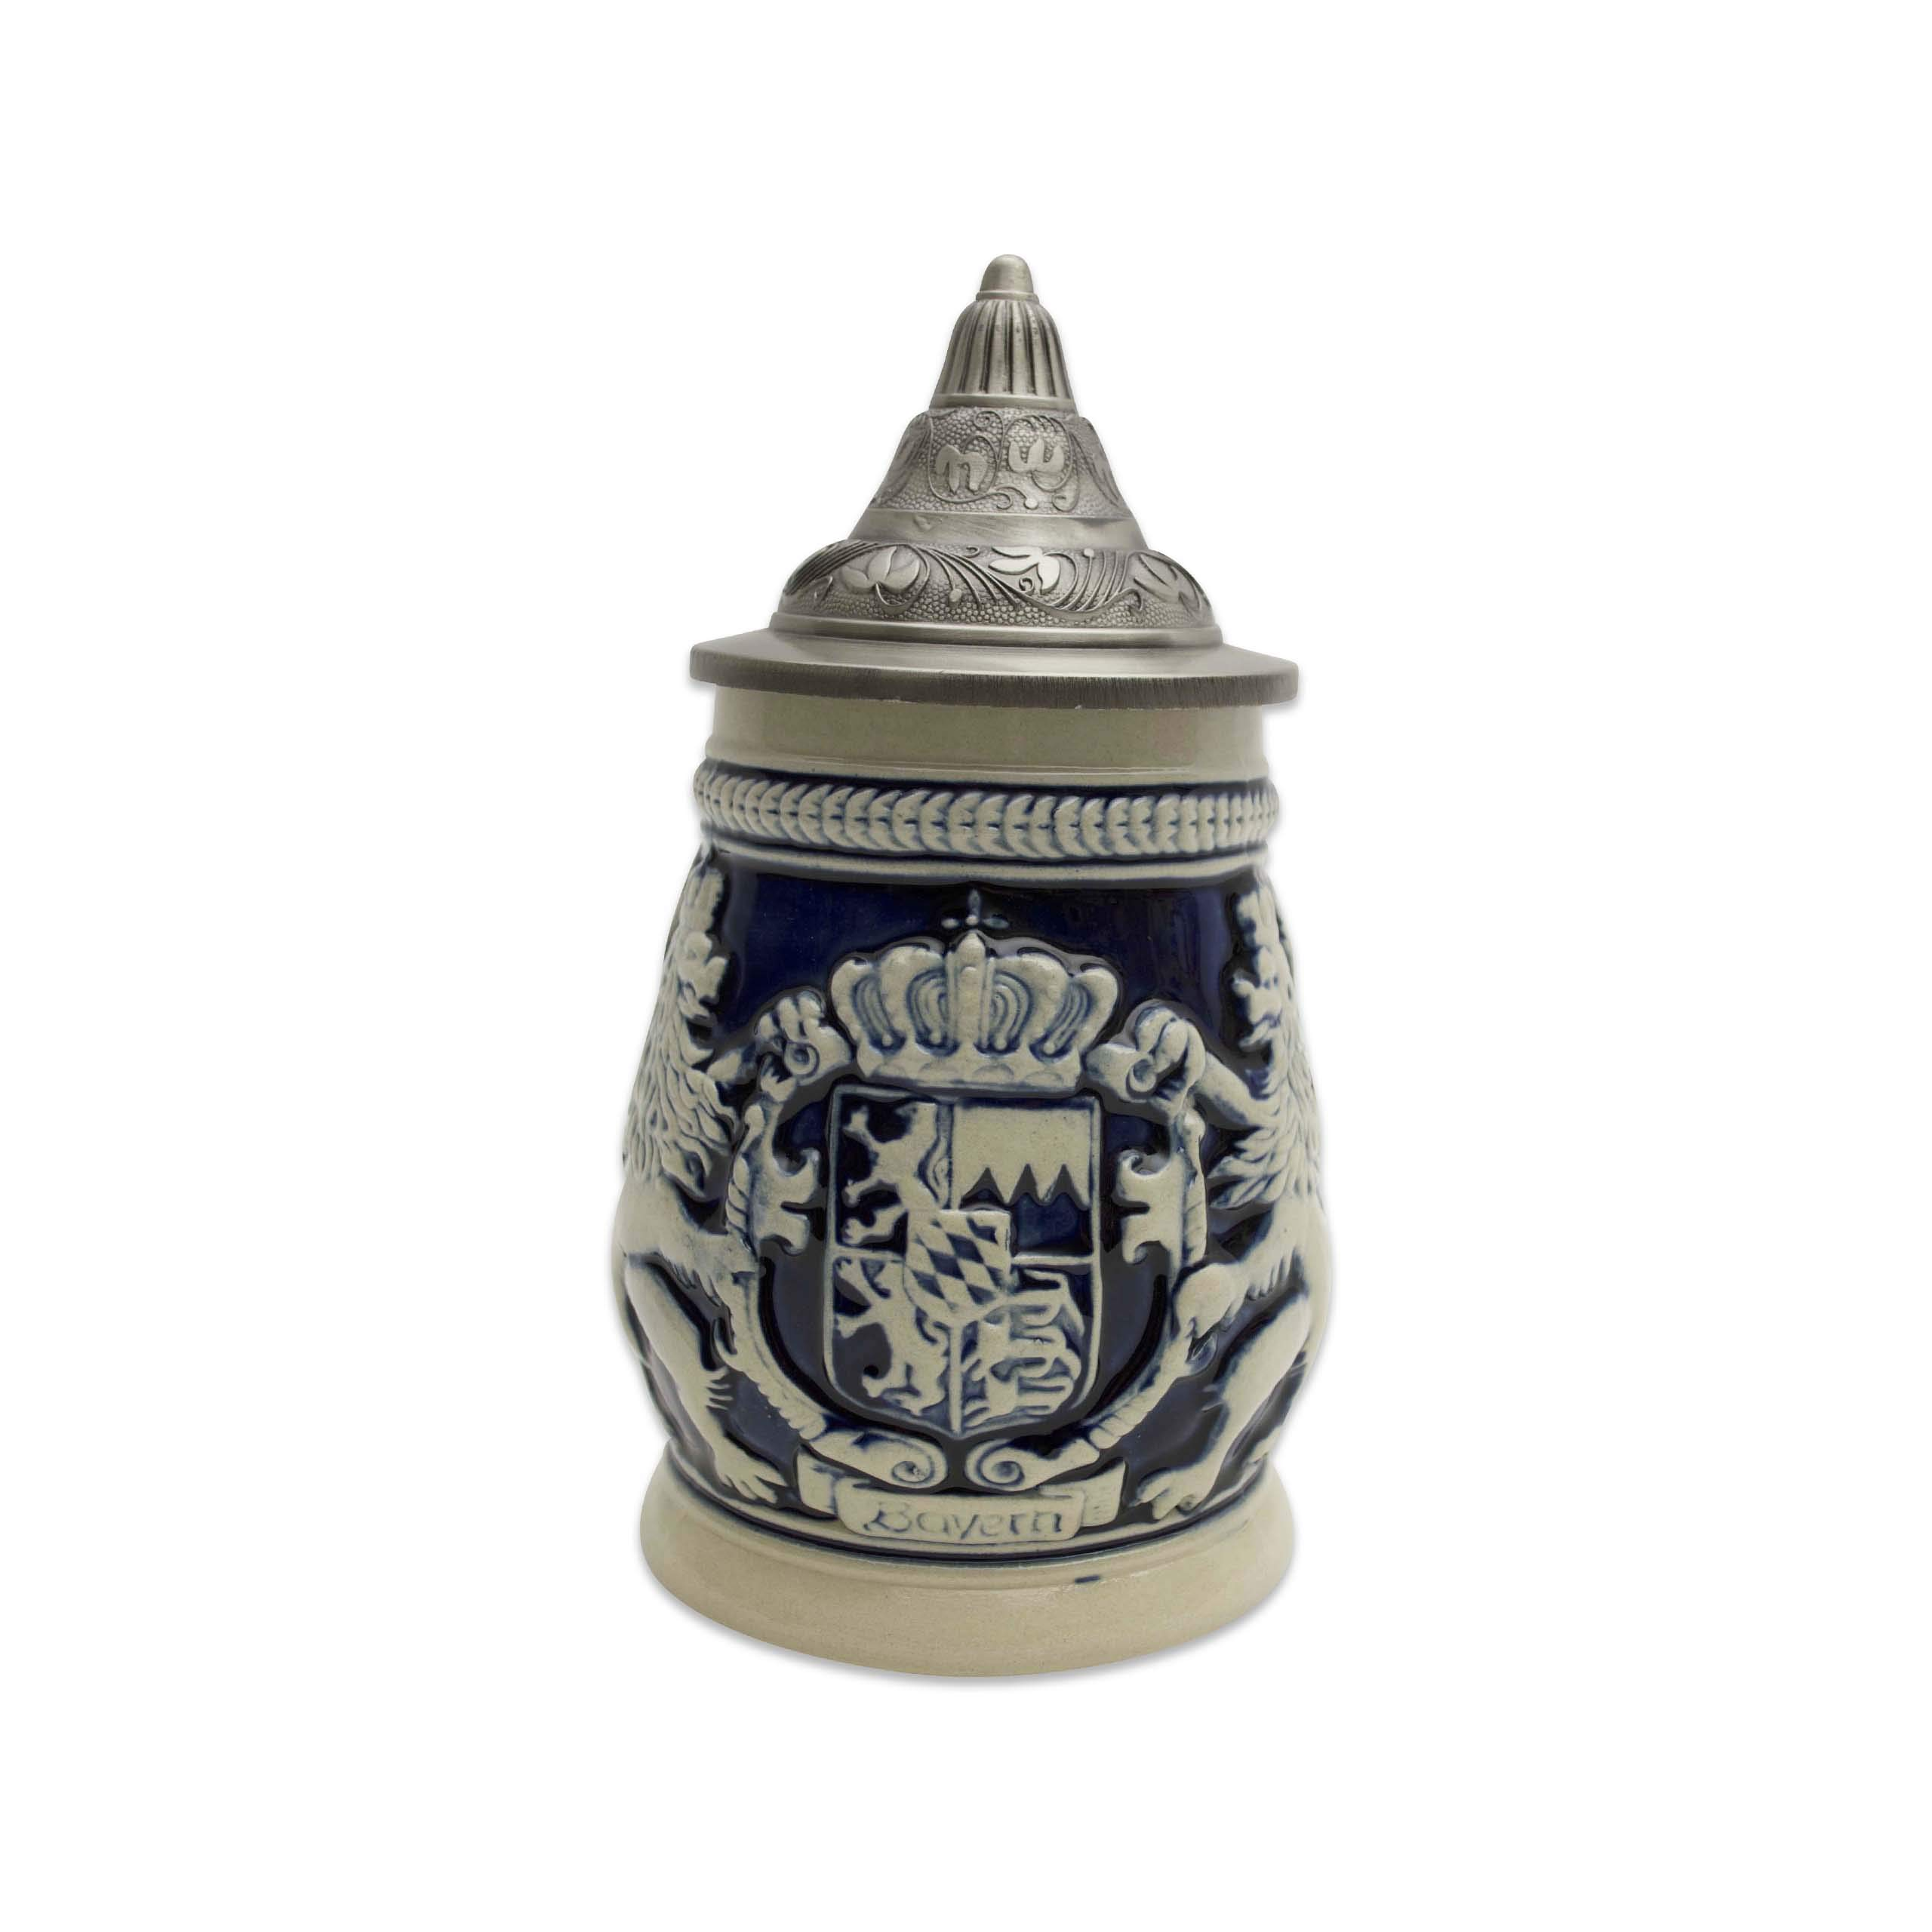 Beer Stein Germany Bayern Coat of Arms Lidded Beer Mug by E.H.G. | .75 Liter